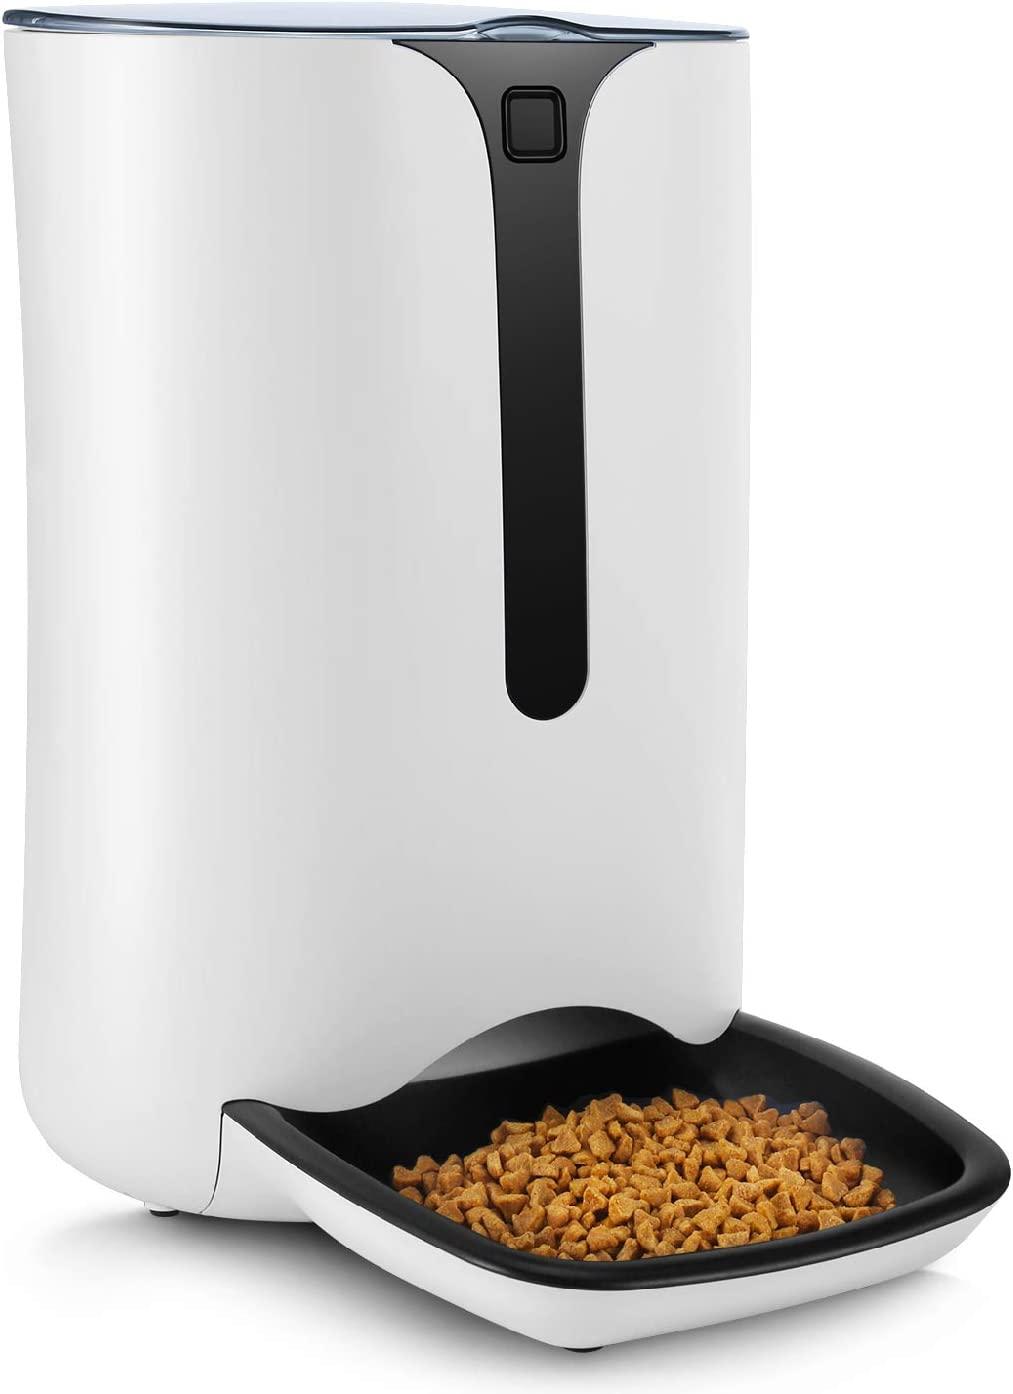 Flexzion Automatic Pet Feeder Food Dispenser/f Cats Dogs & Small Animals w/Programmable Timer, Meal Portion Control, Voice Recording & Playback, Electronic Auto Timed Food Dispenser up to 4 Meals